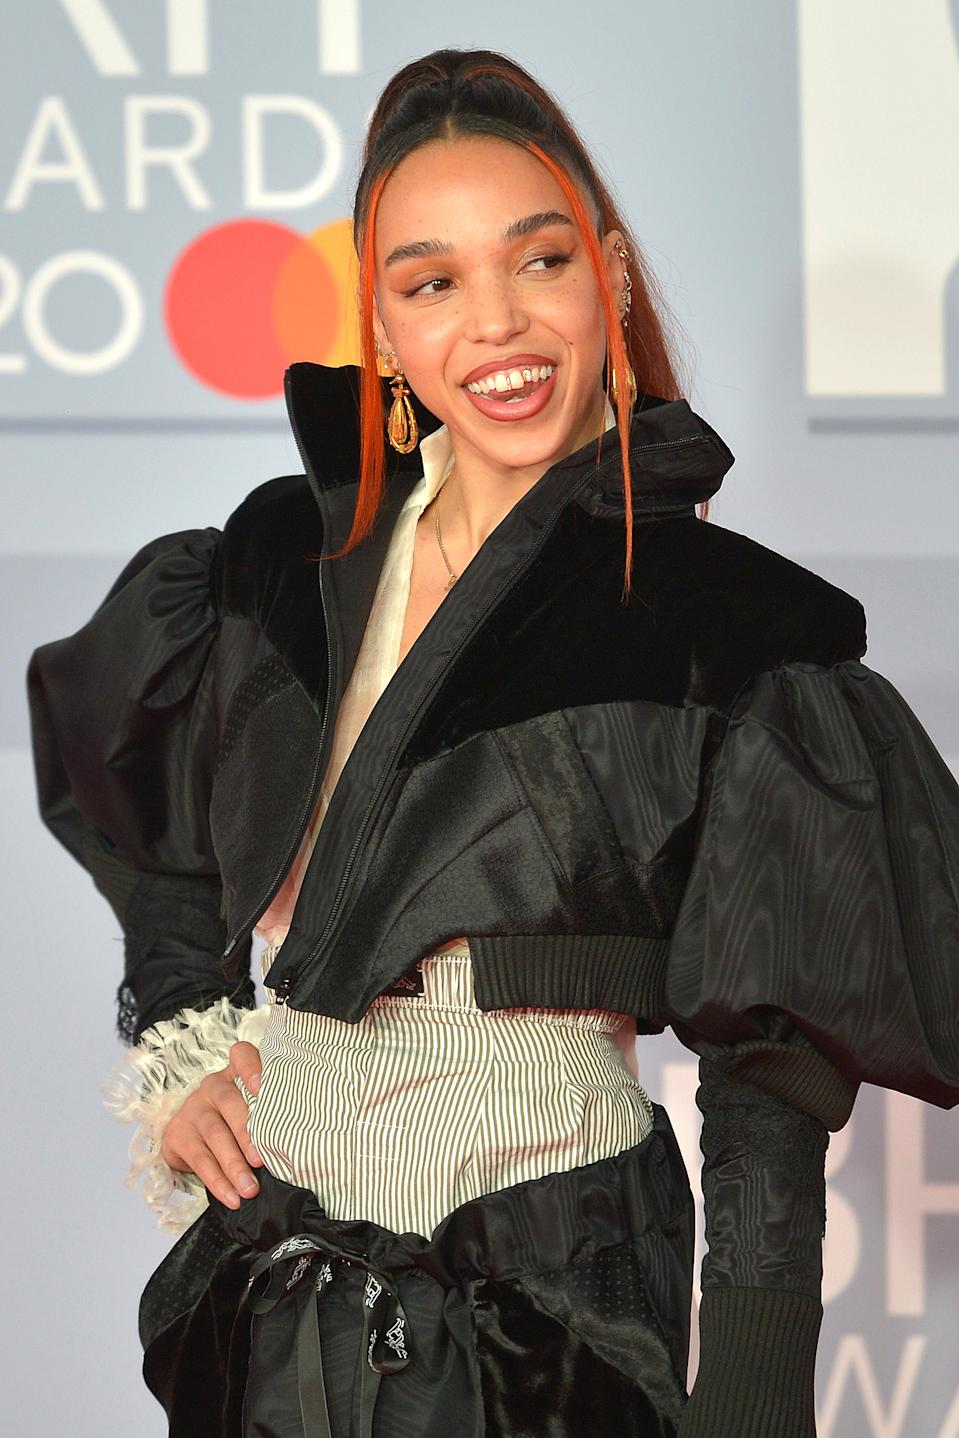 FKA Twigs attends The BRIT Awards 2020 at The O2 Arena on February 18, 2020 in London, England. (Photo by Jim Dyson/Redferns)